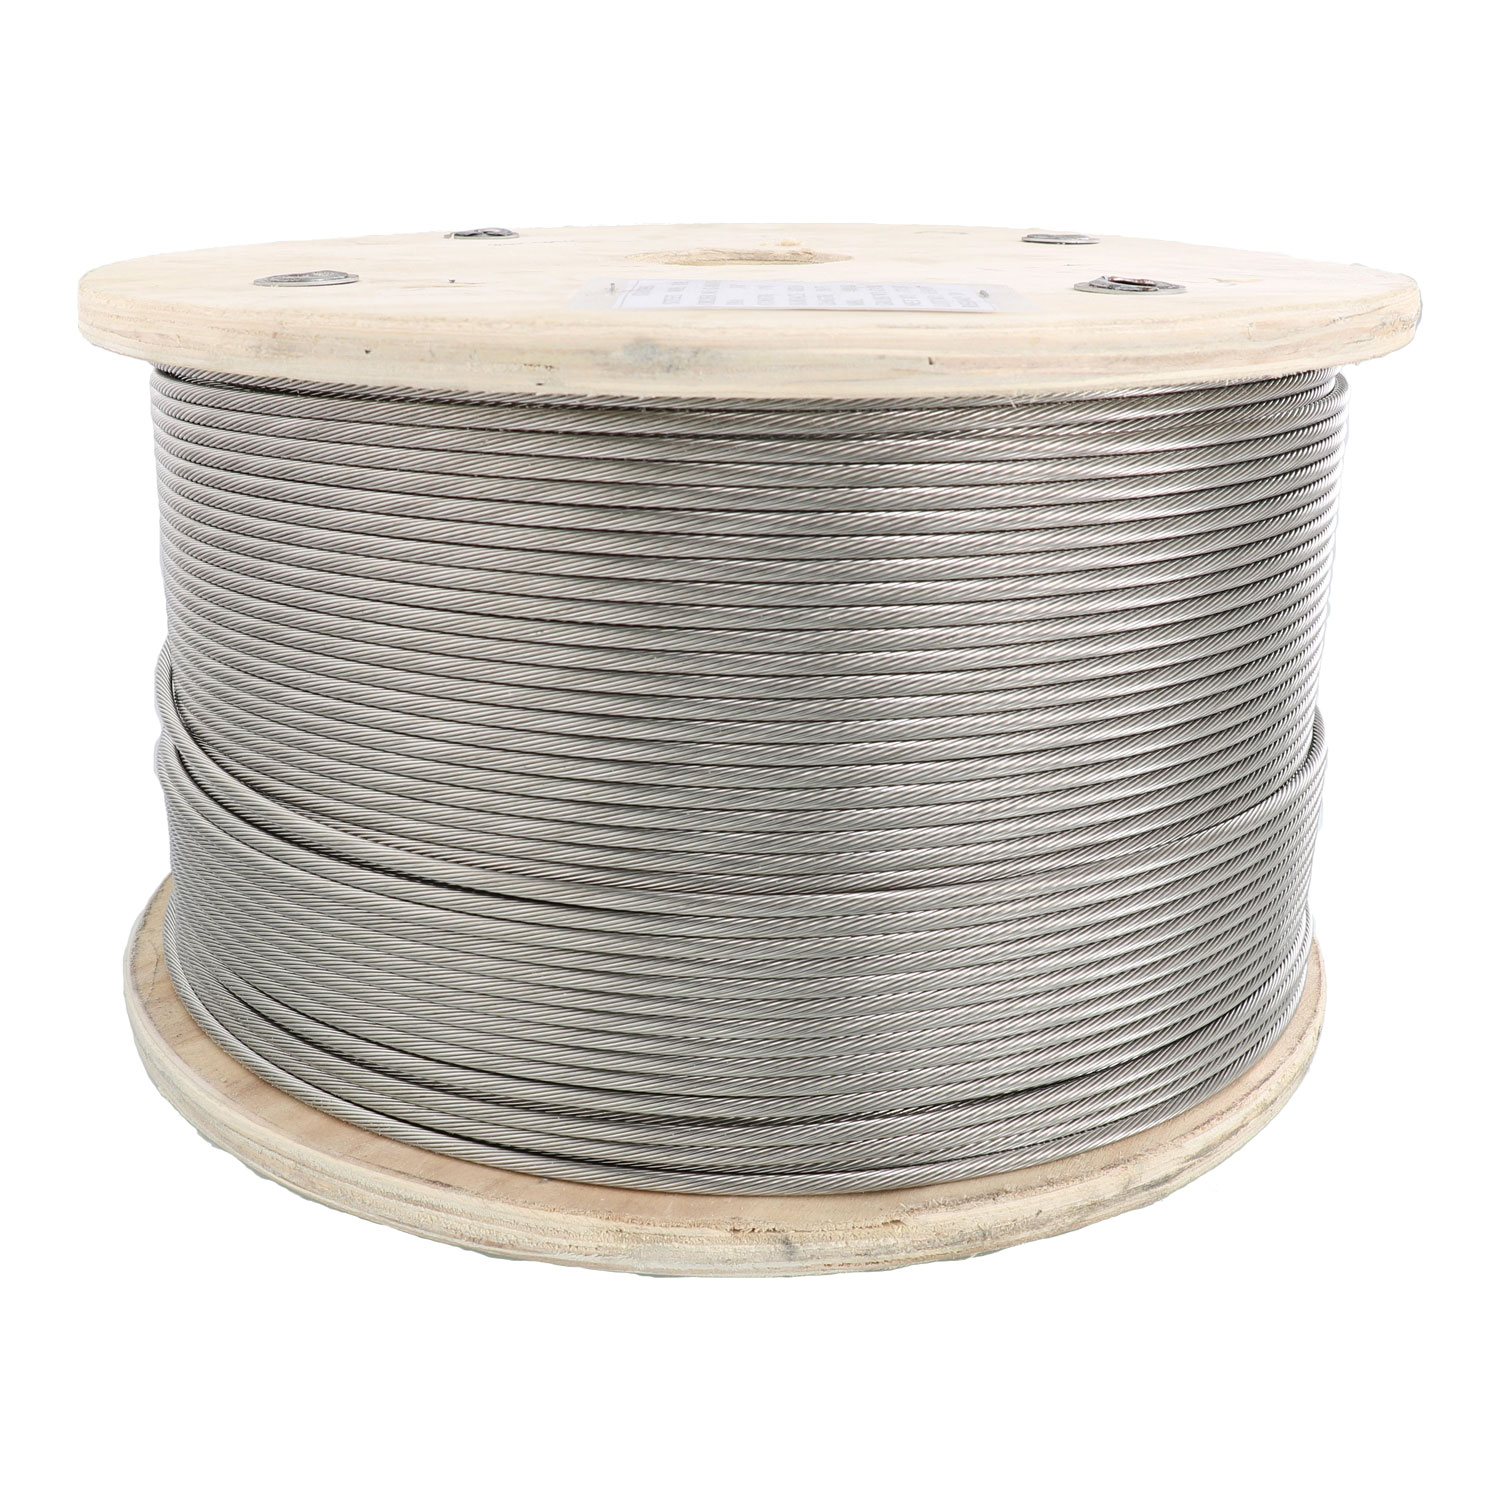 1 x 19 Type 316 Stainless Steel Cable